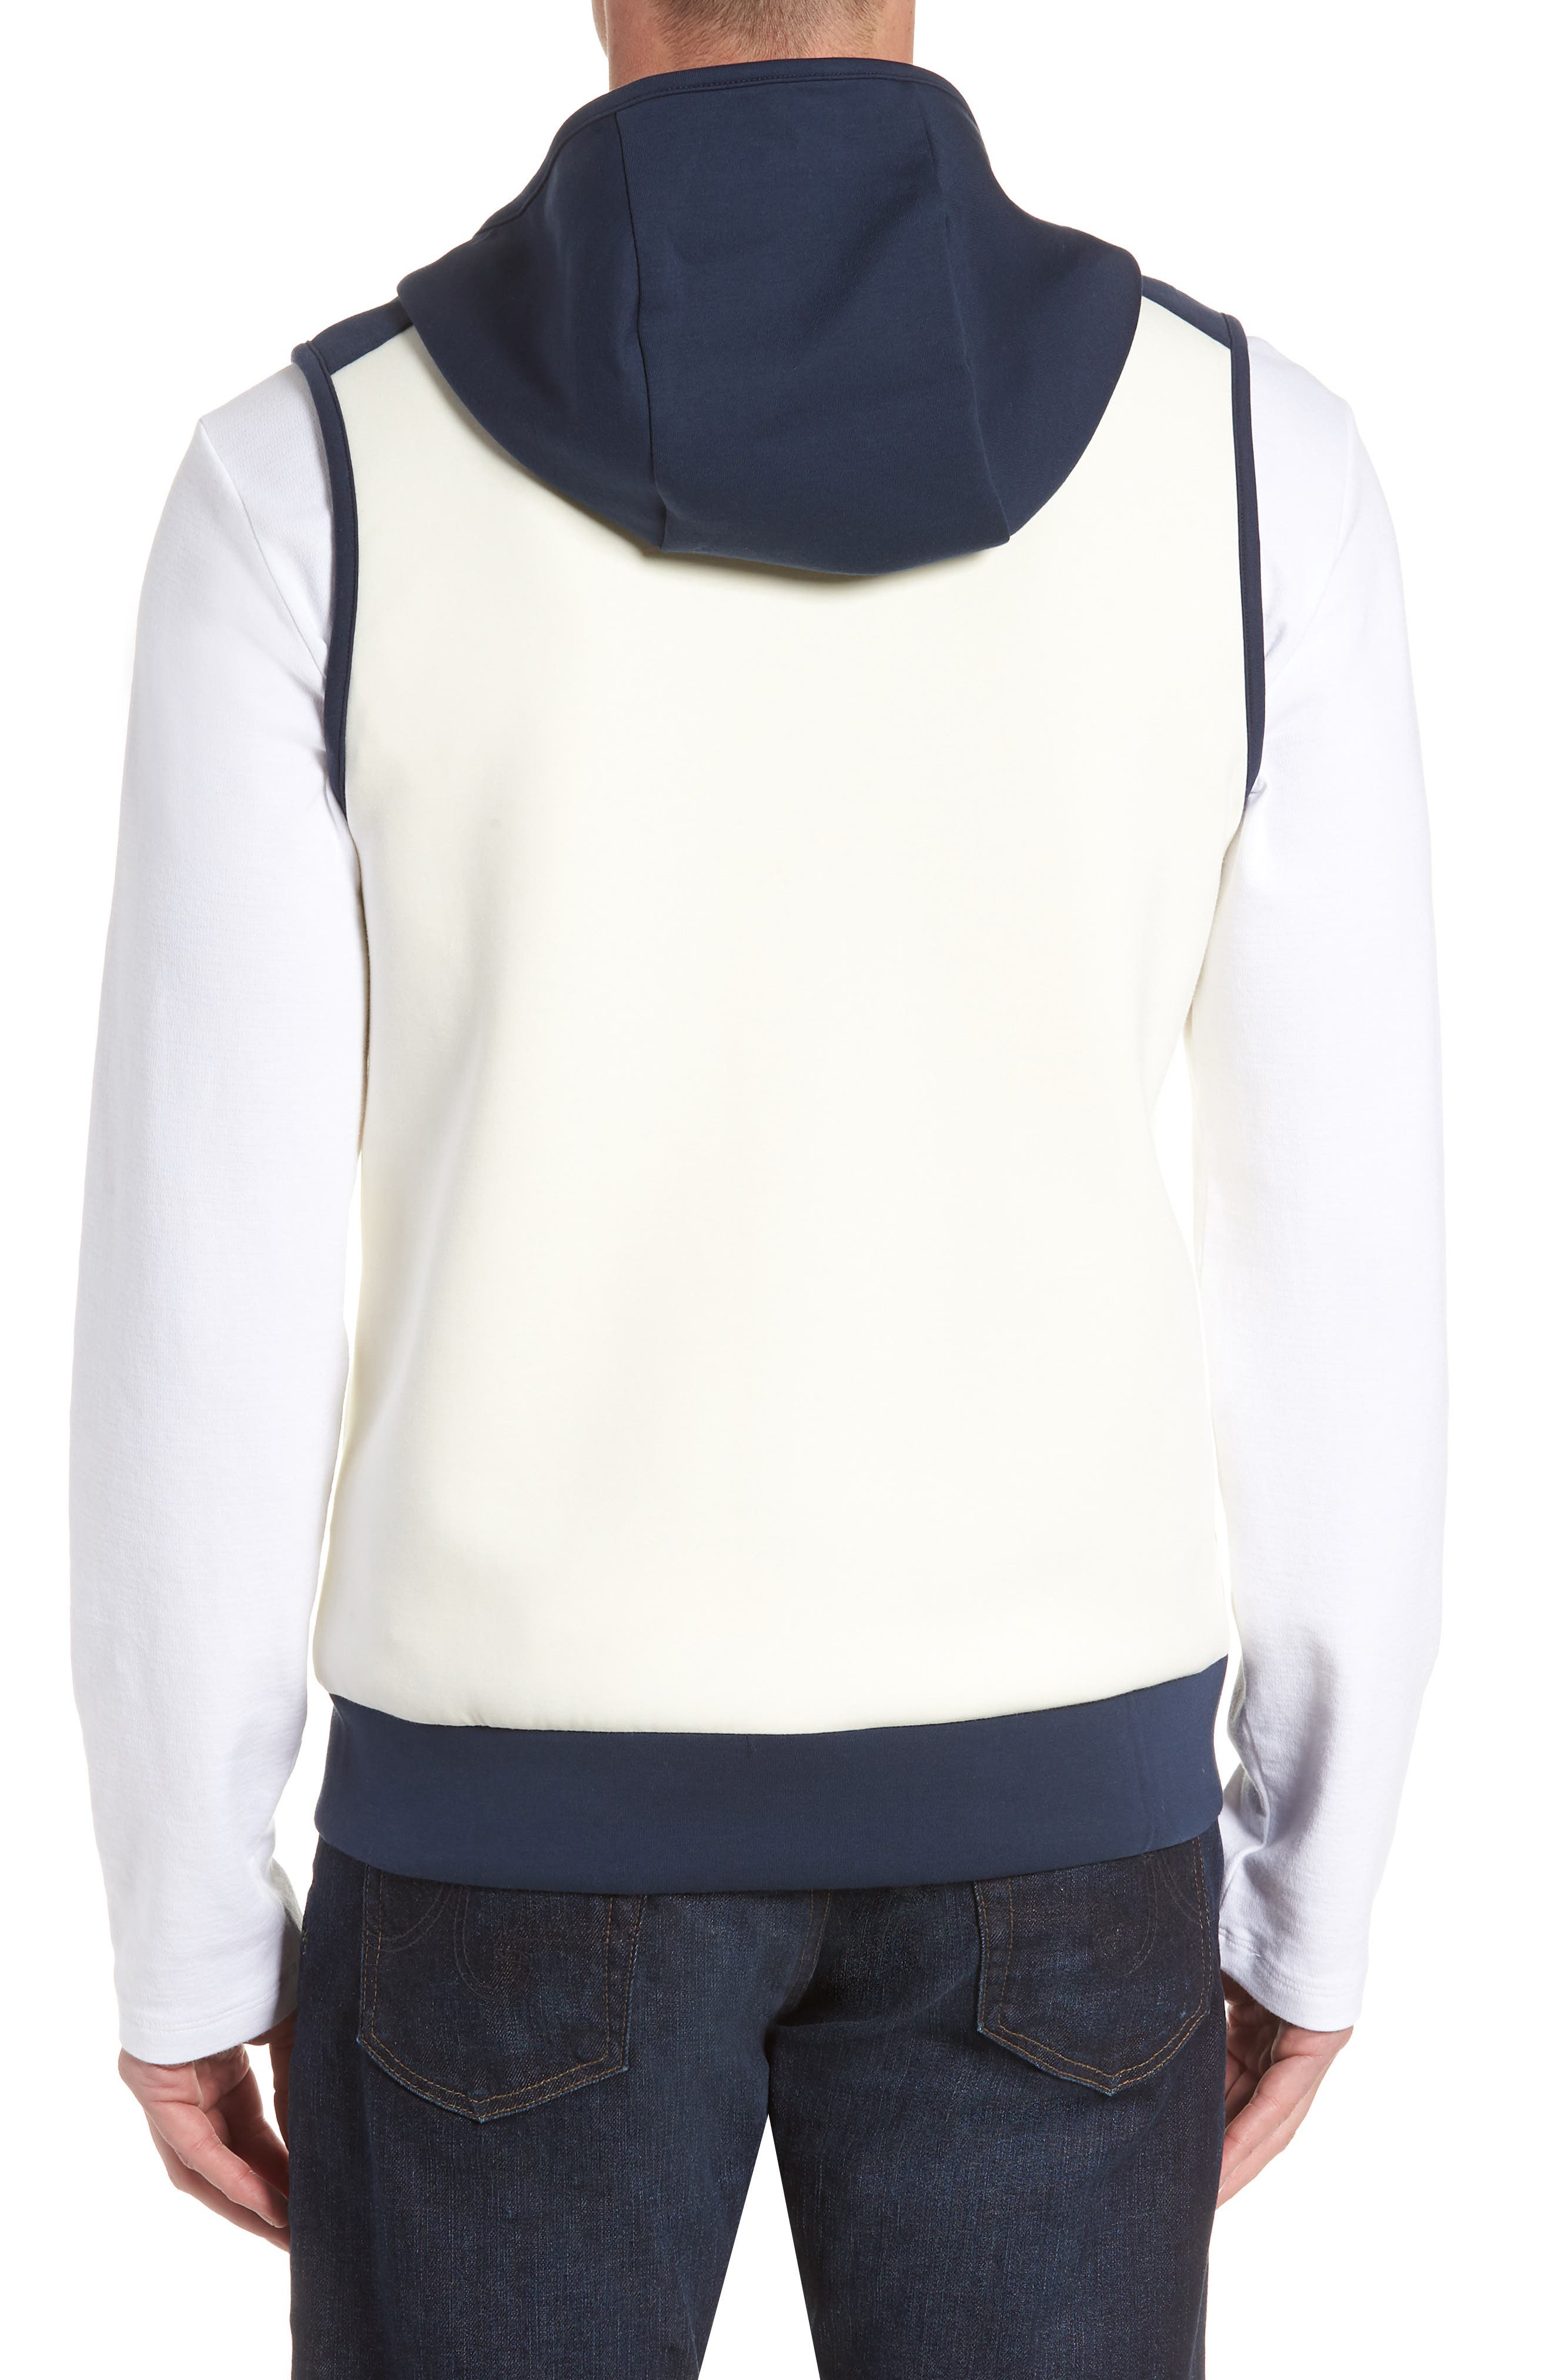 Unstoppable Knit Vest,                             Alternate thumbnail 2, color,                             WHITE / SUMMER NIGHT / BLACK